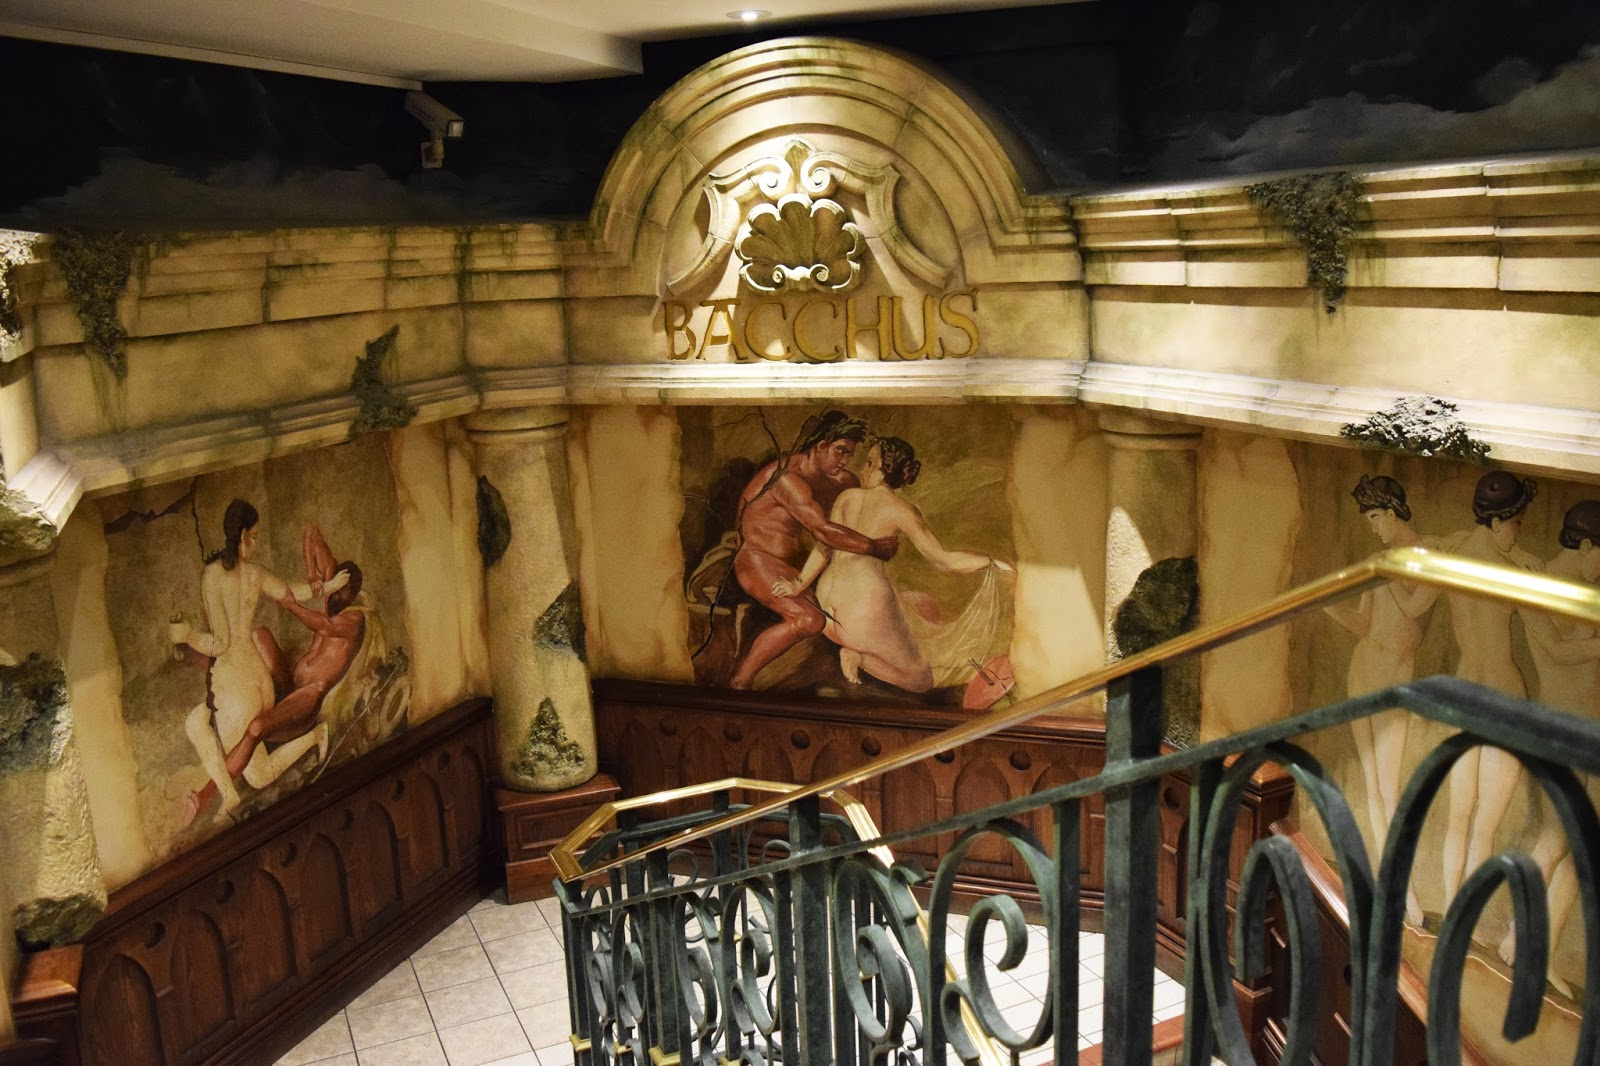 The entrance to Bacchus bar